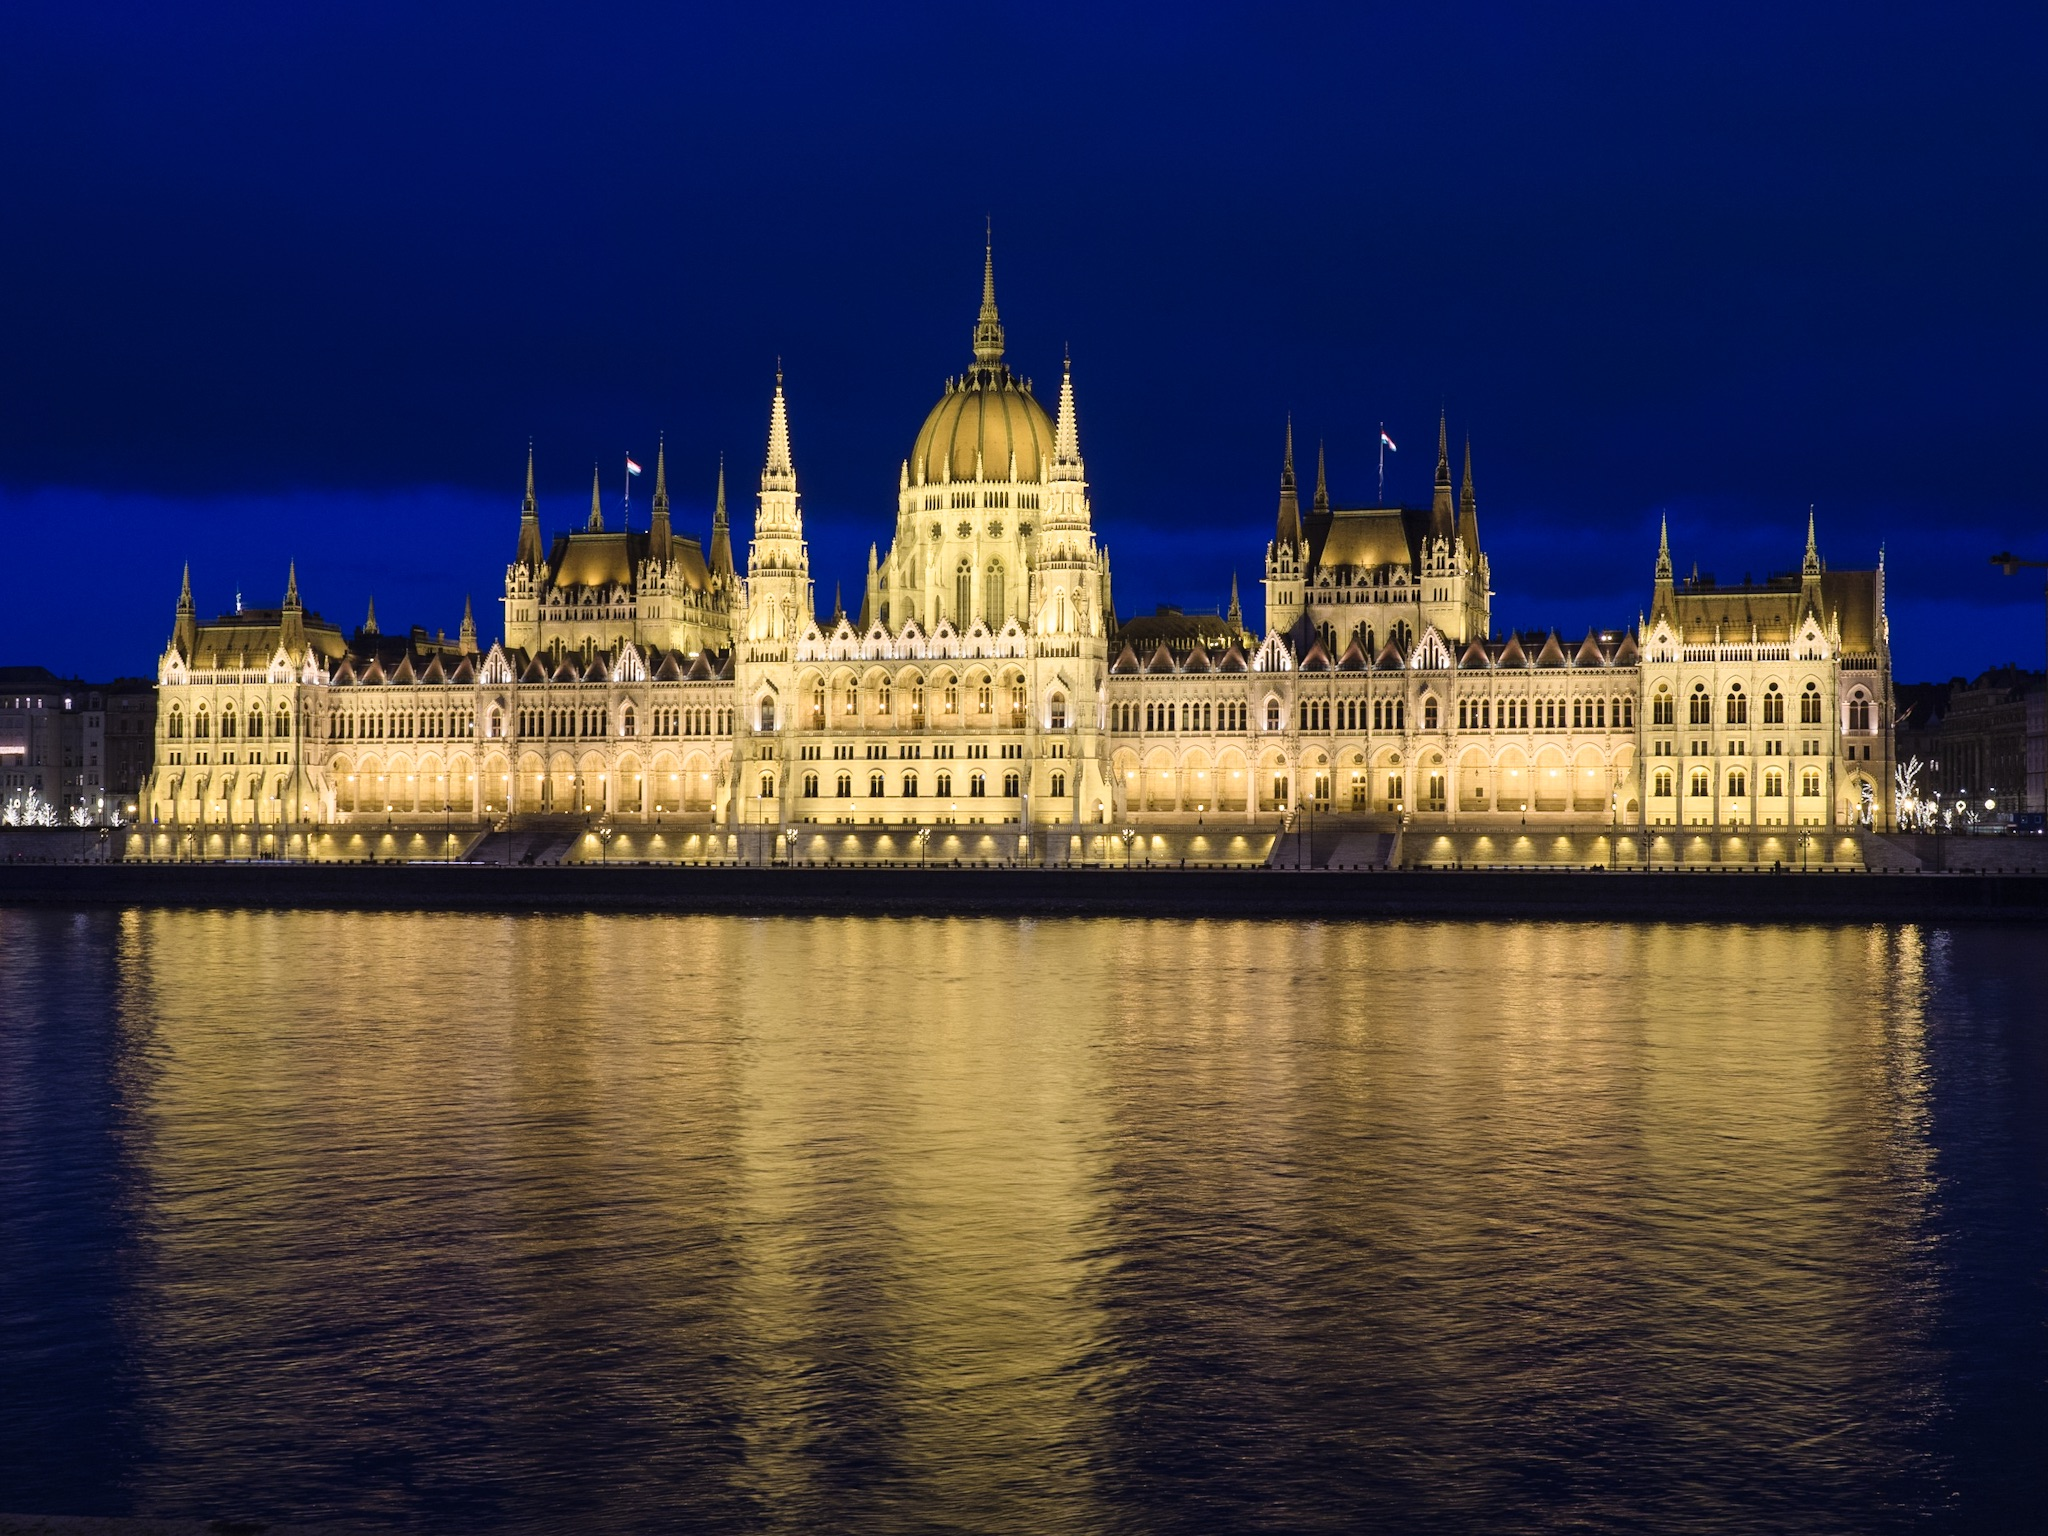 Budapest parliament, such a lovely building.